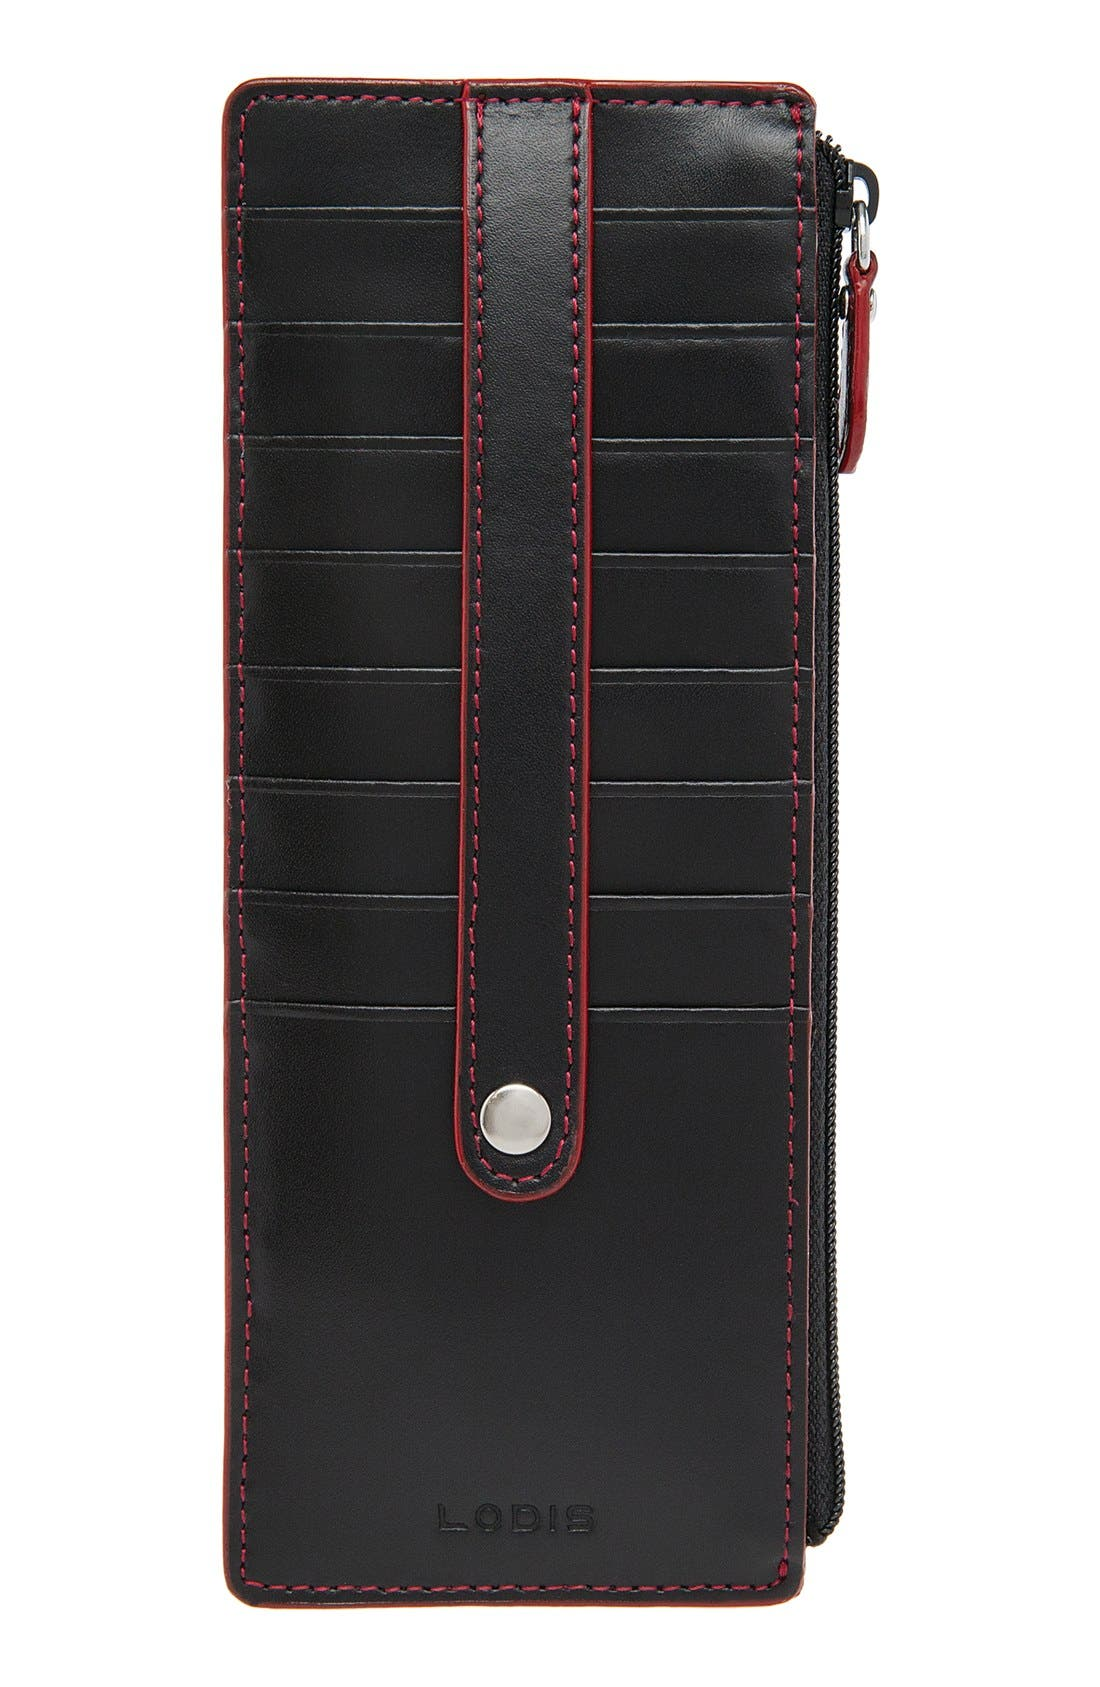 Main Image - Lodis 'Audrey' Credit Card Case